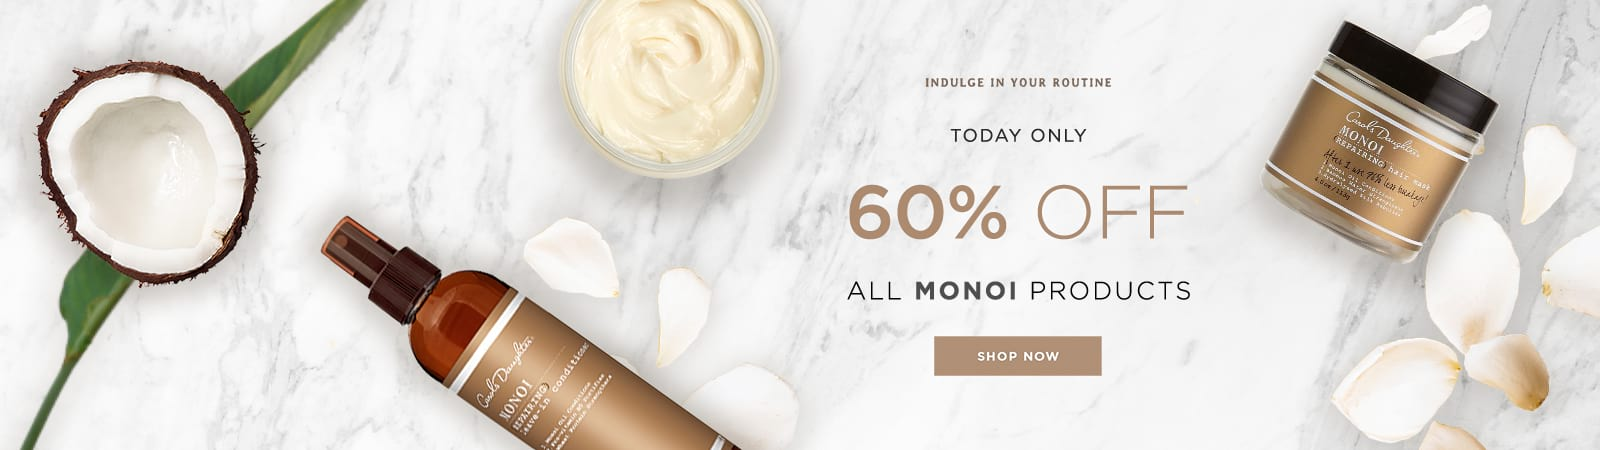 60% Off Monoi. Shop Now.